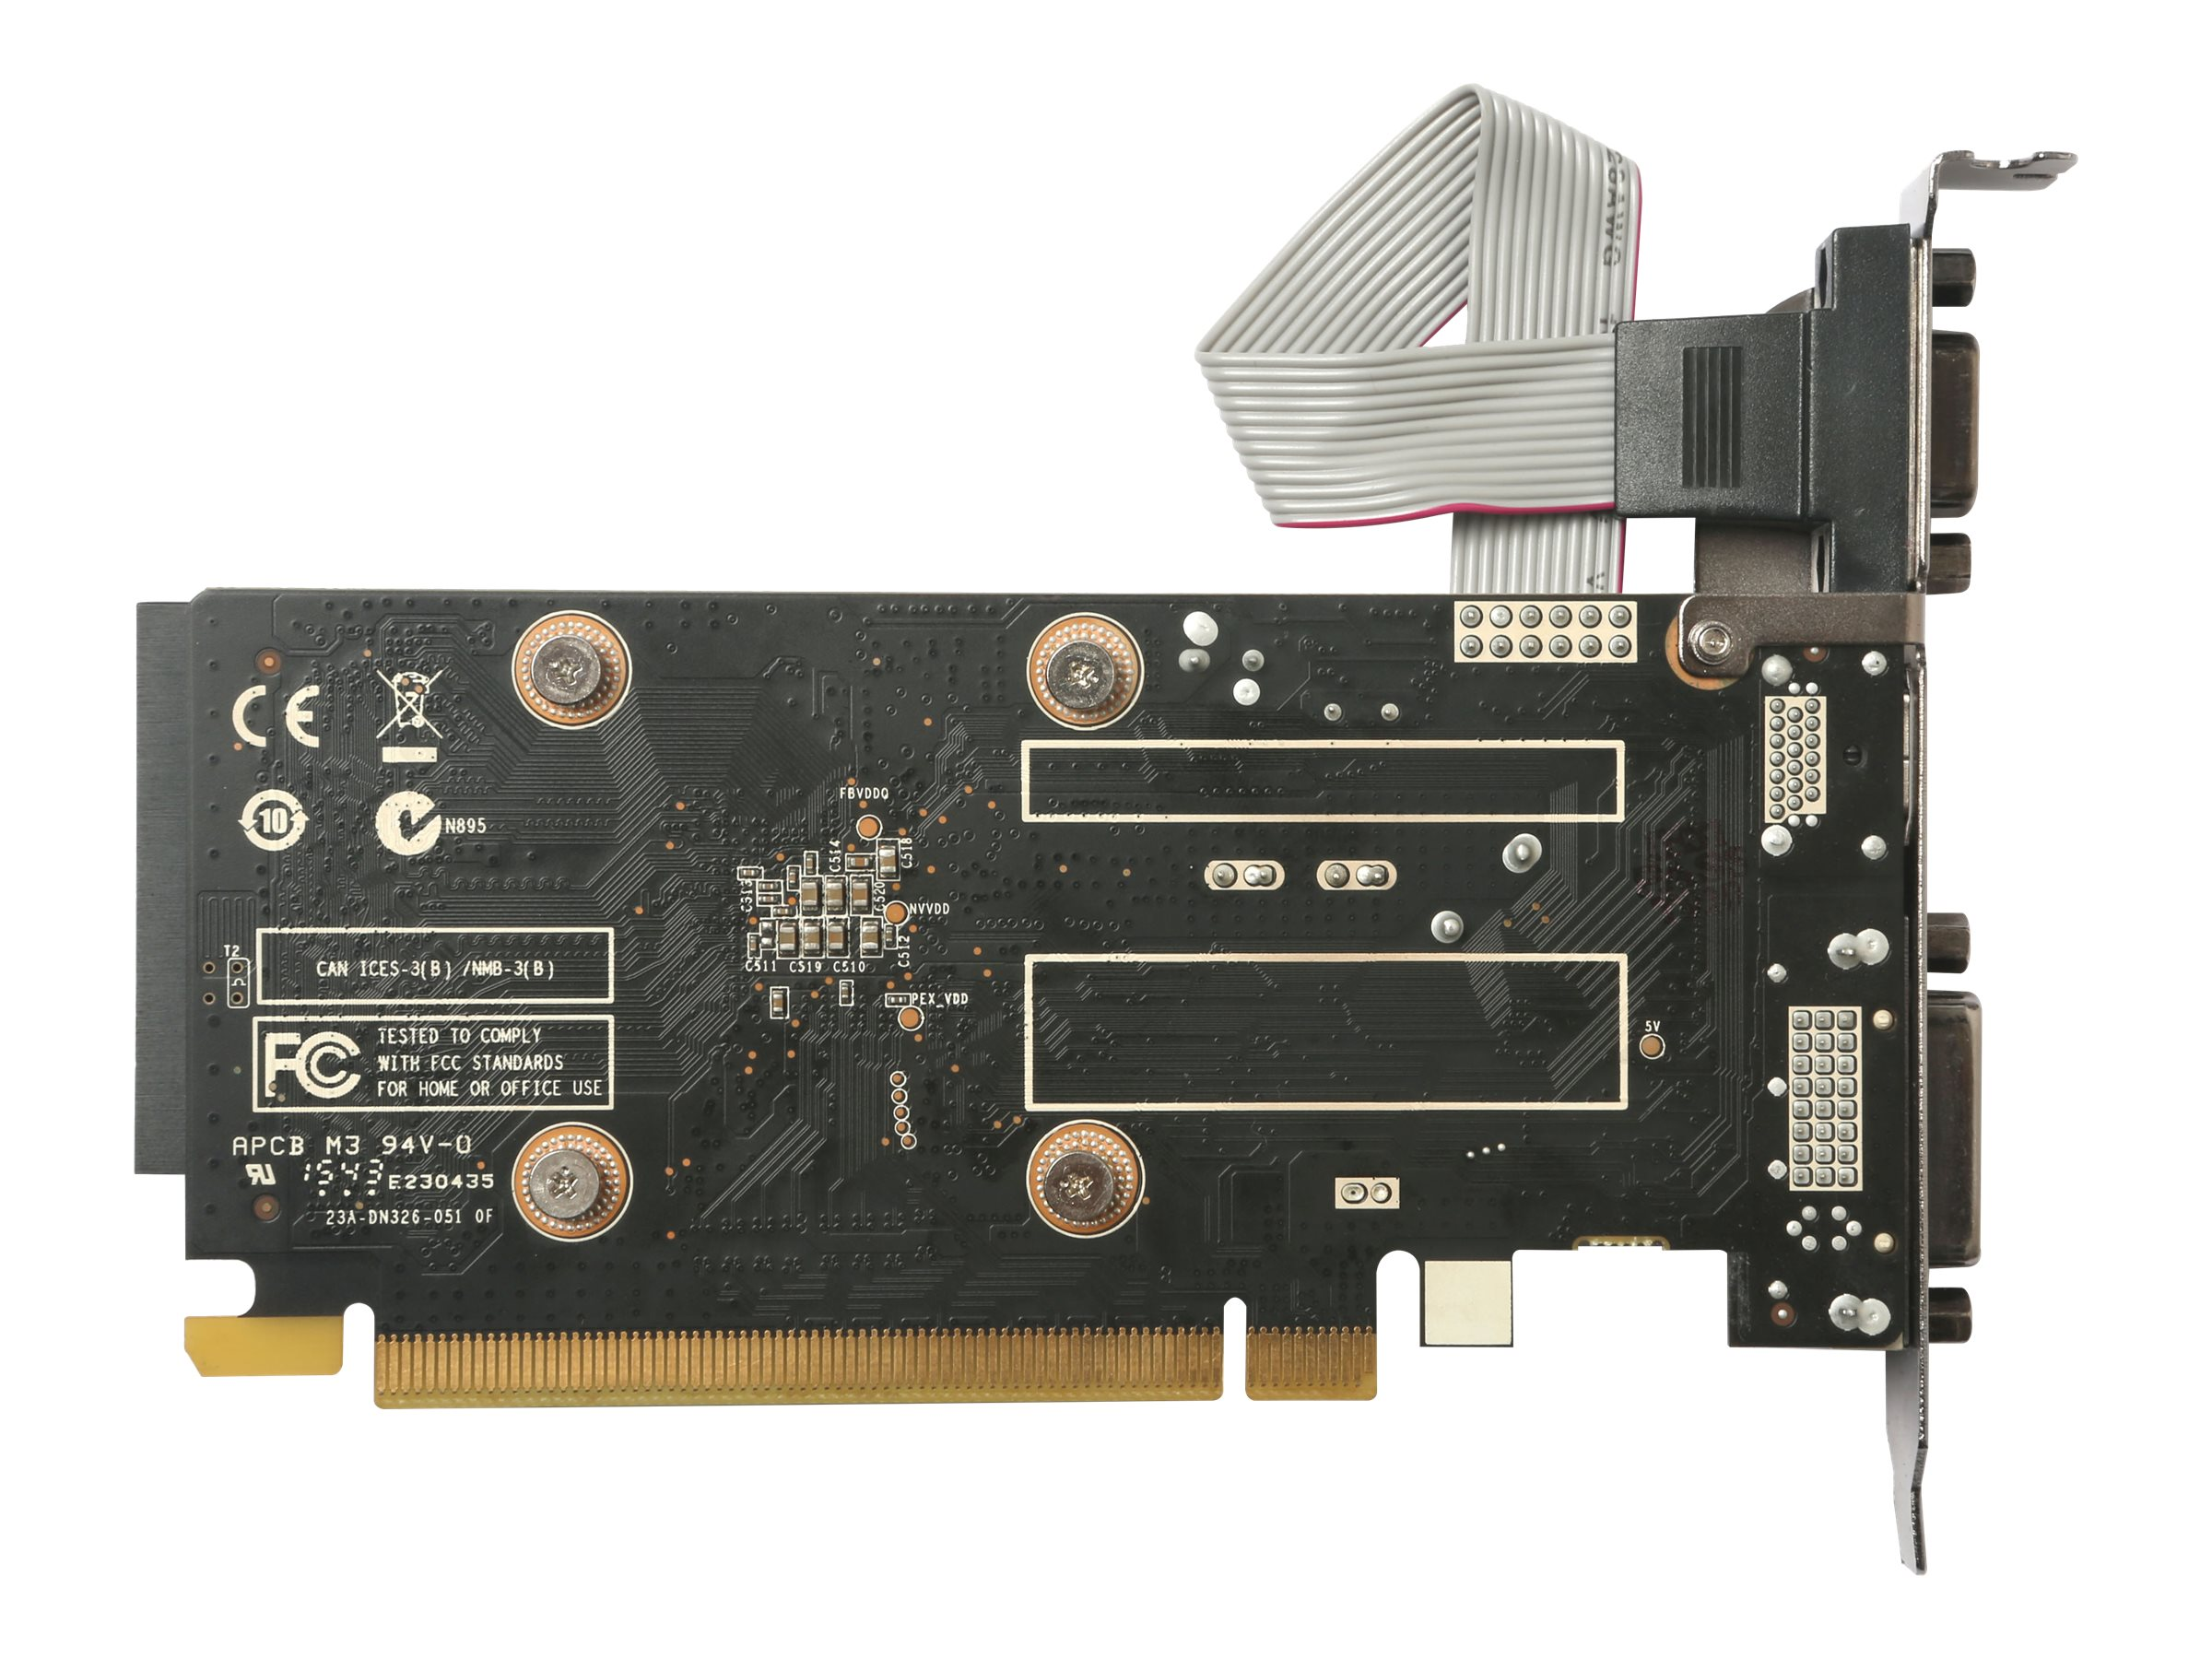 ZOTAC GeForce GT 710 - graphics card - GF GT 710 - 2 GB